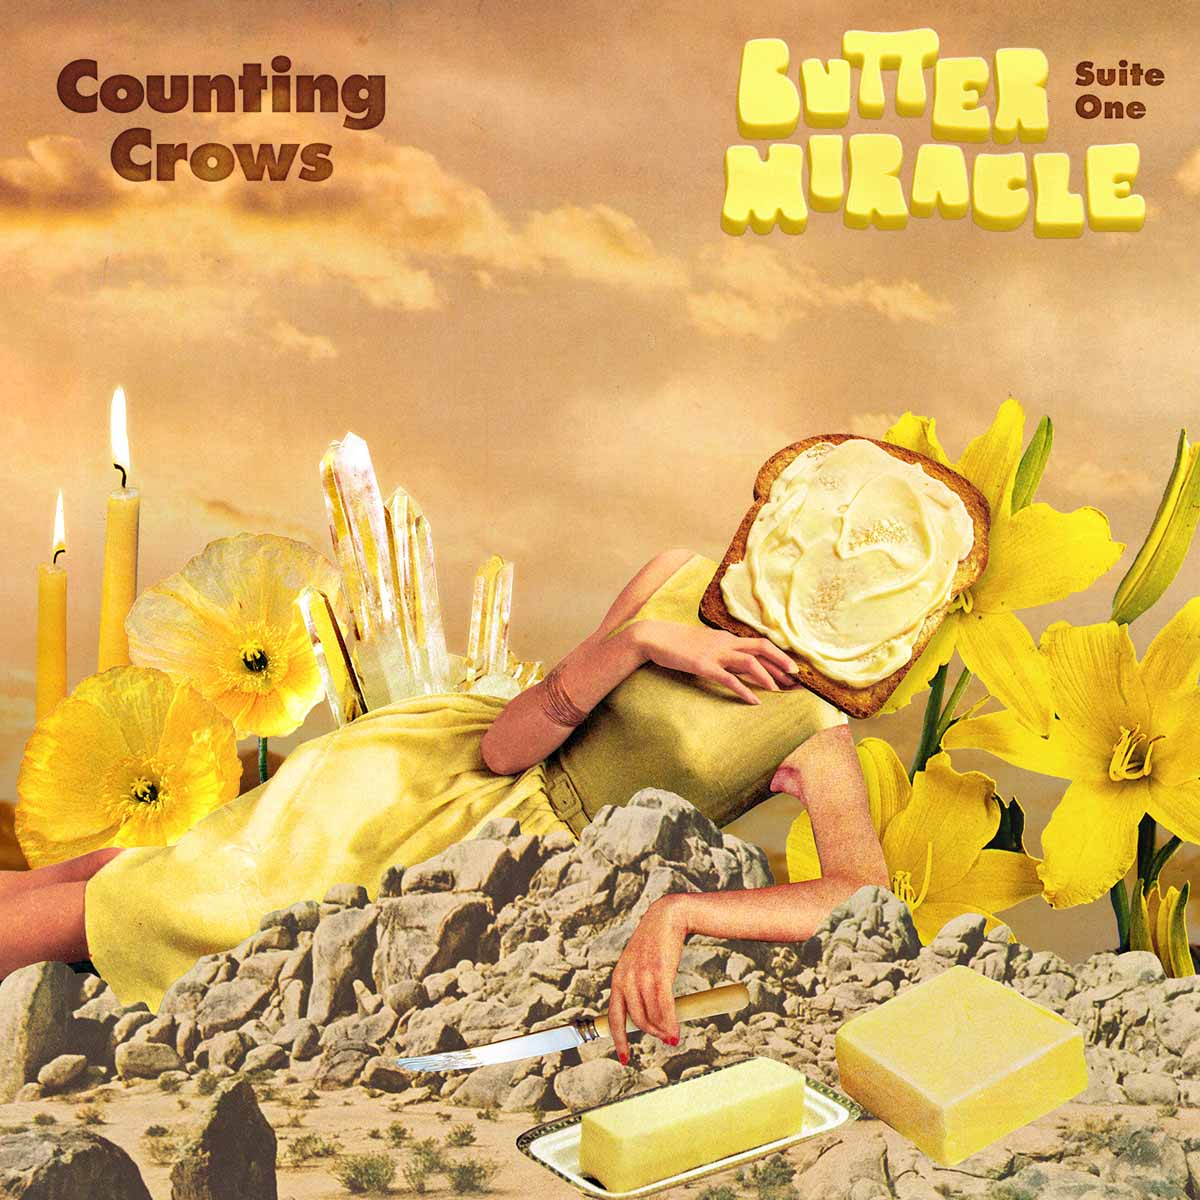 Counting Crows Butter Miracle Suite One